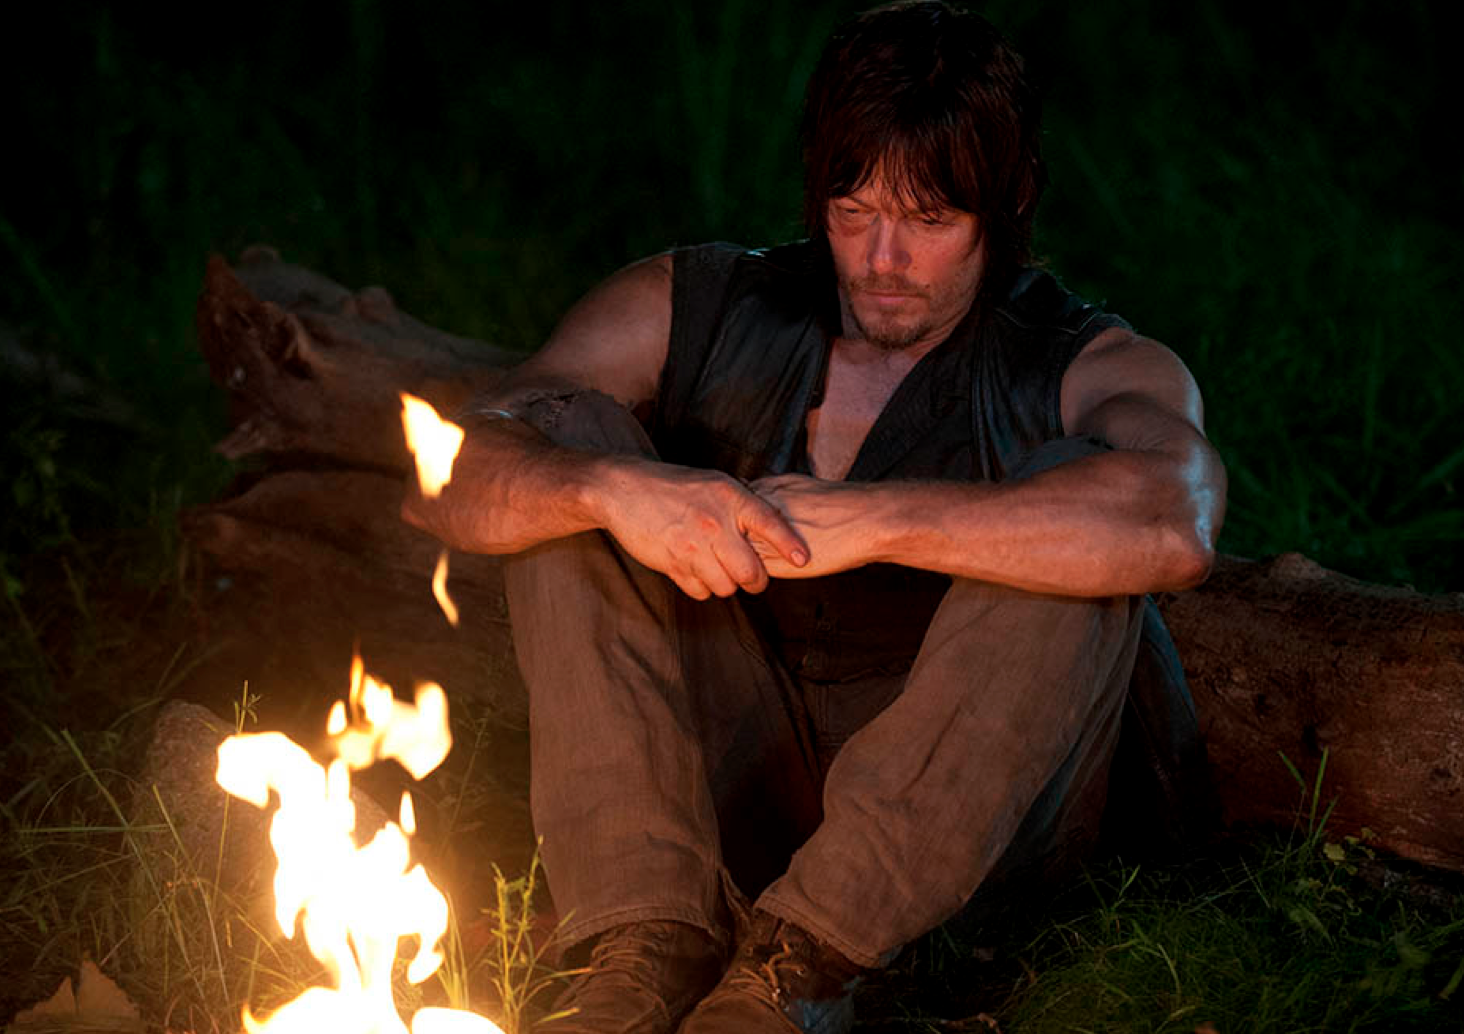 Daryl has all of the ingredients for S'mores except for marshmallows, chocolate and graham crackers ... and a stick.